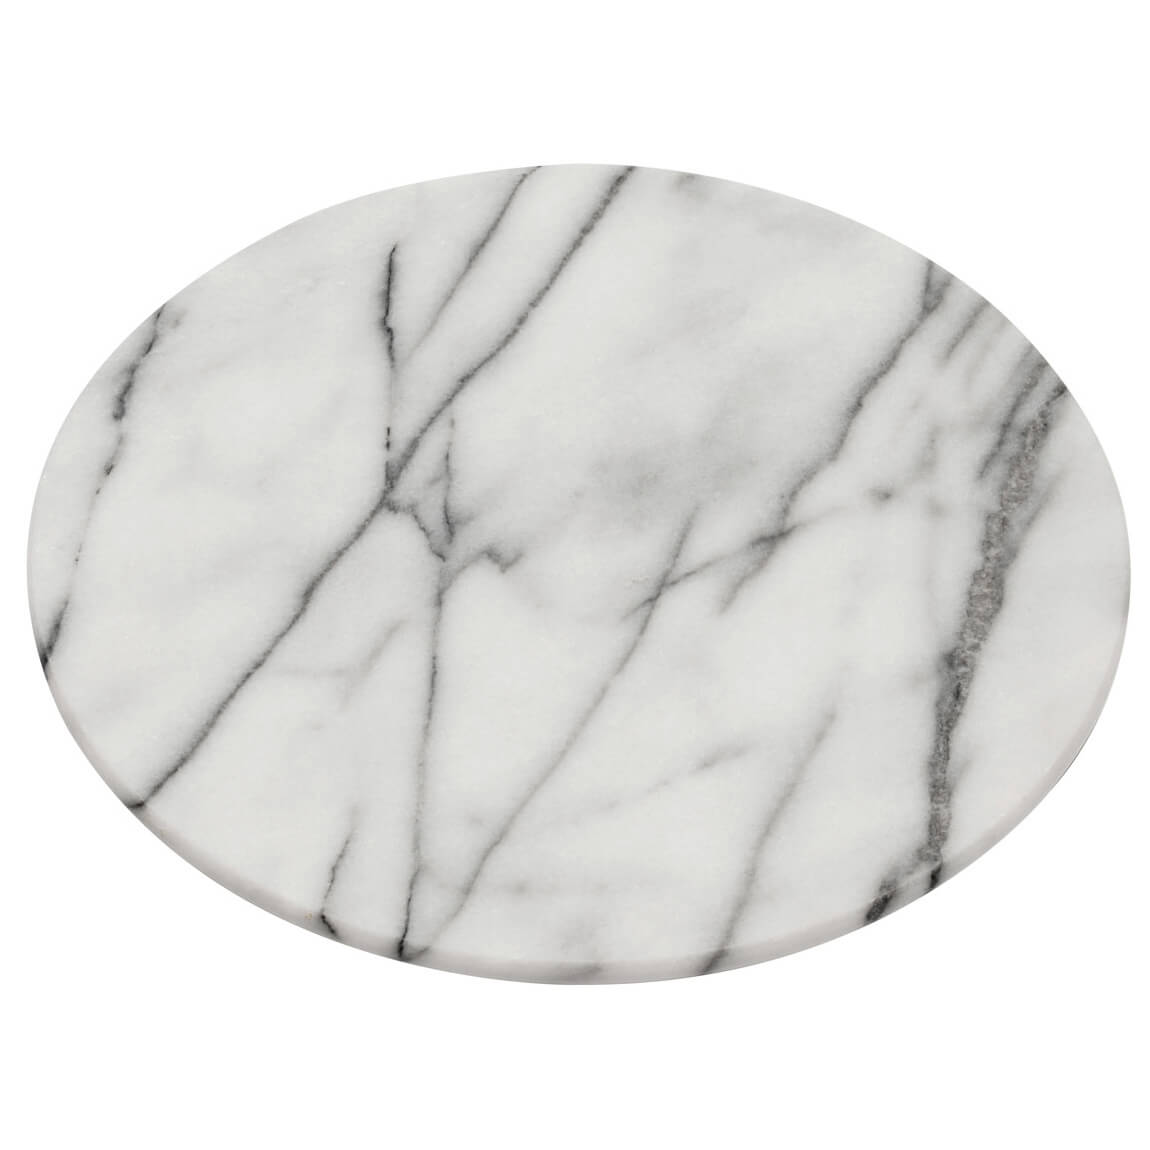 Premier Housewares Lazy Susan Chopping Board - White Marble